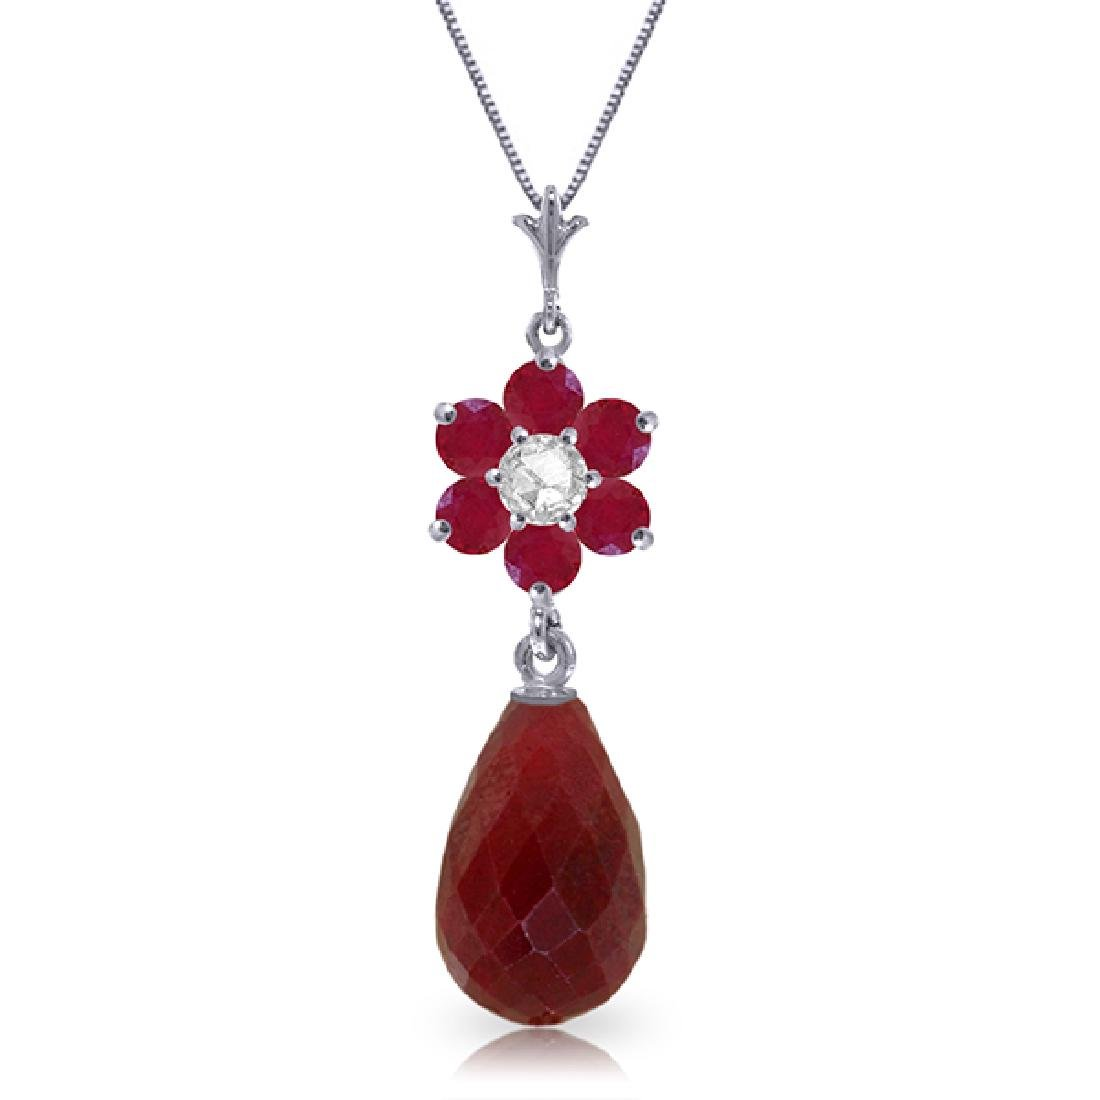 Genuine 3.83 ctw Ruby & Diamond Necklace Jewelry 14KT